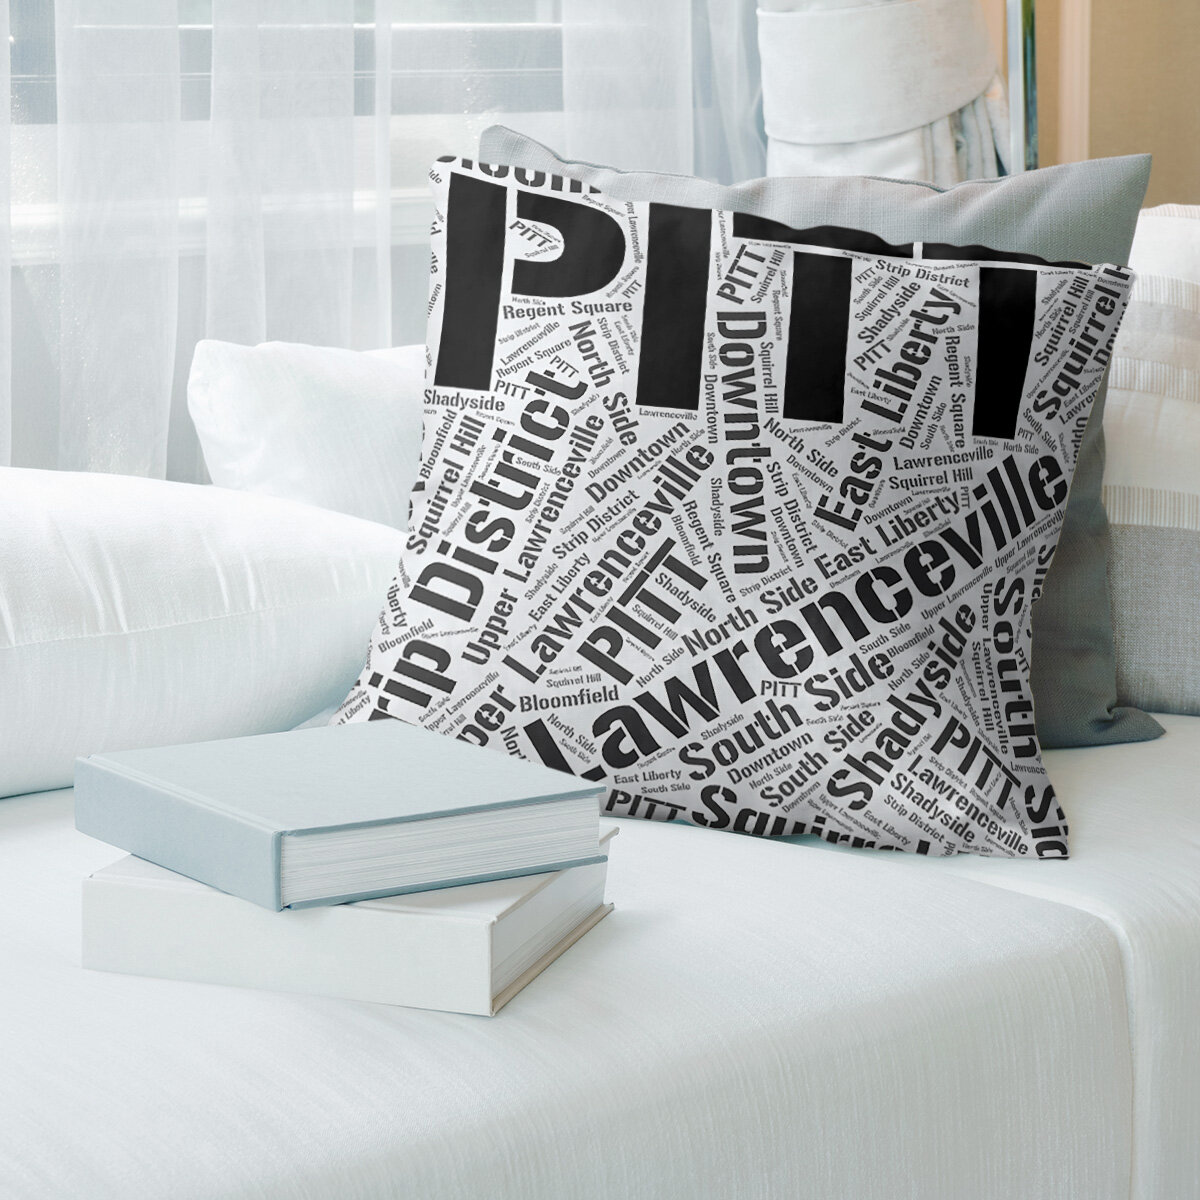 Black Leather Suede Throw Pillows You Ll Love In 2021 Wayfair